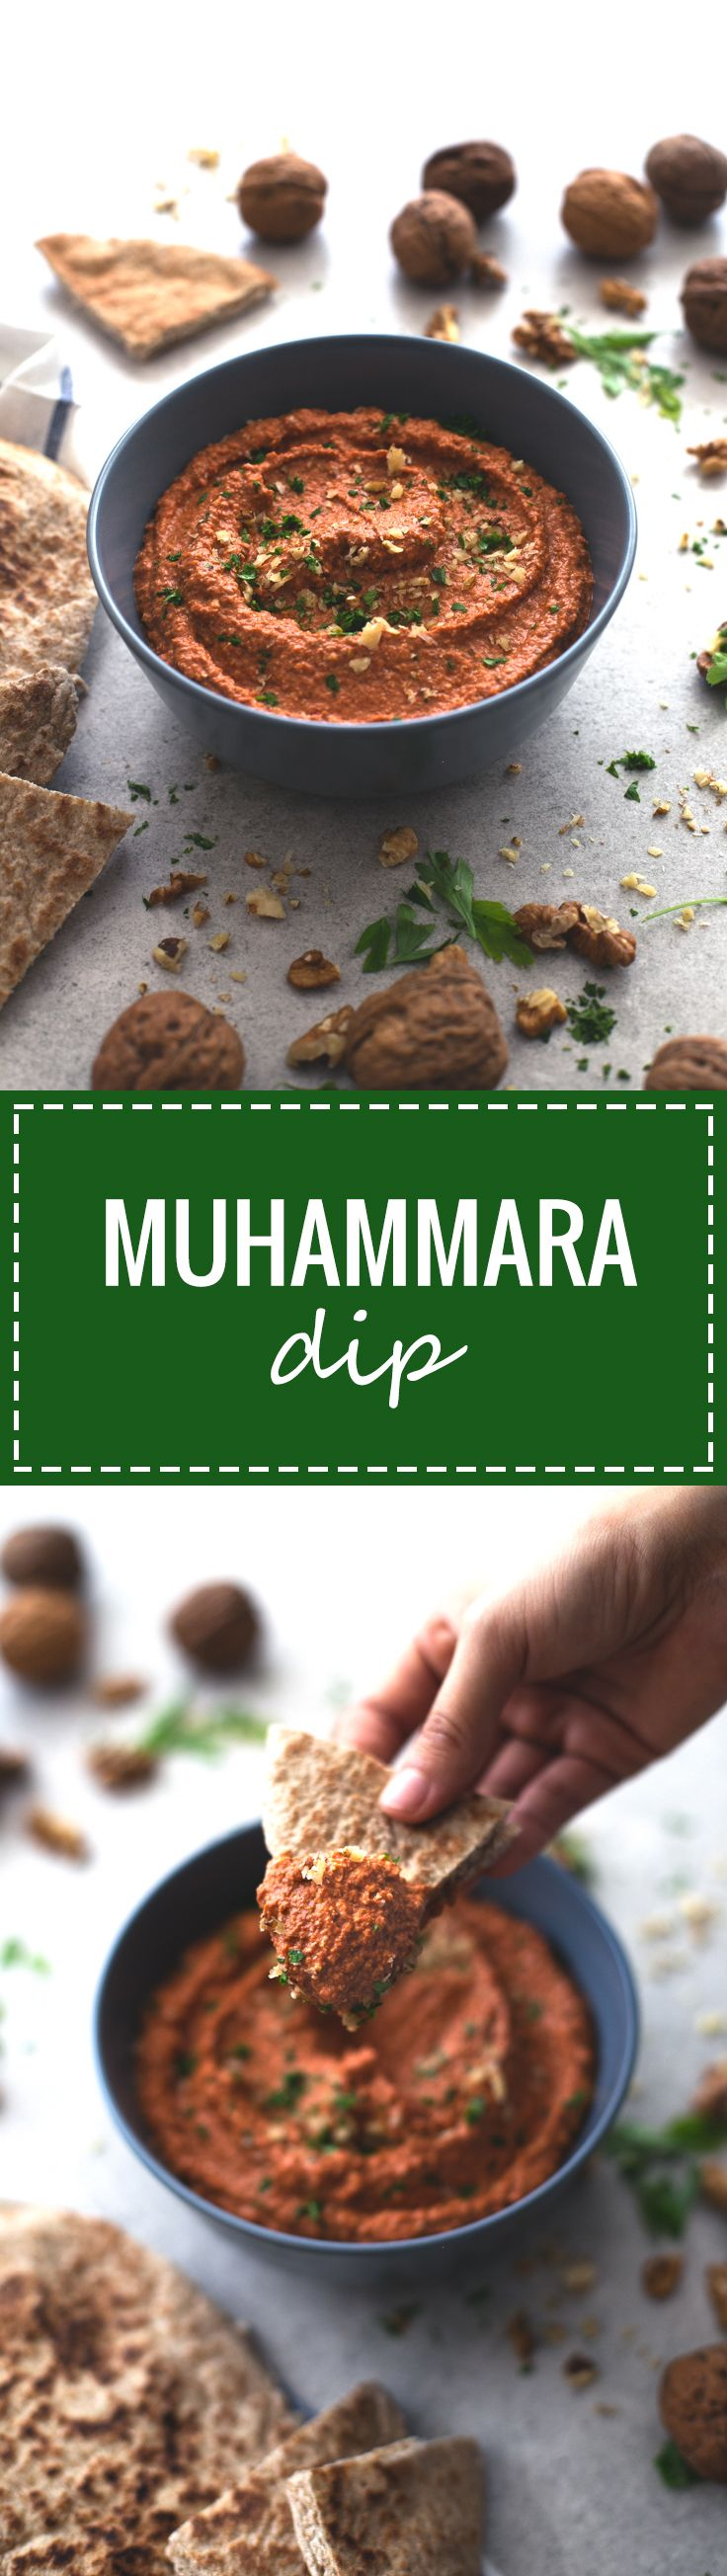 Muhammara is a spicy Syrian red pepper and walnut dip. It's so tasty and is ready in less than 5 minutes, you just need to blend all the ingredients!